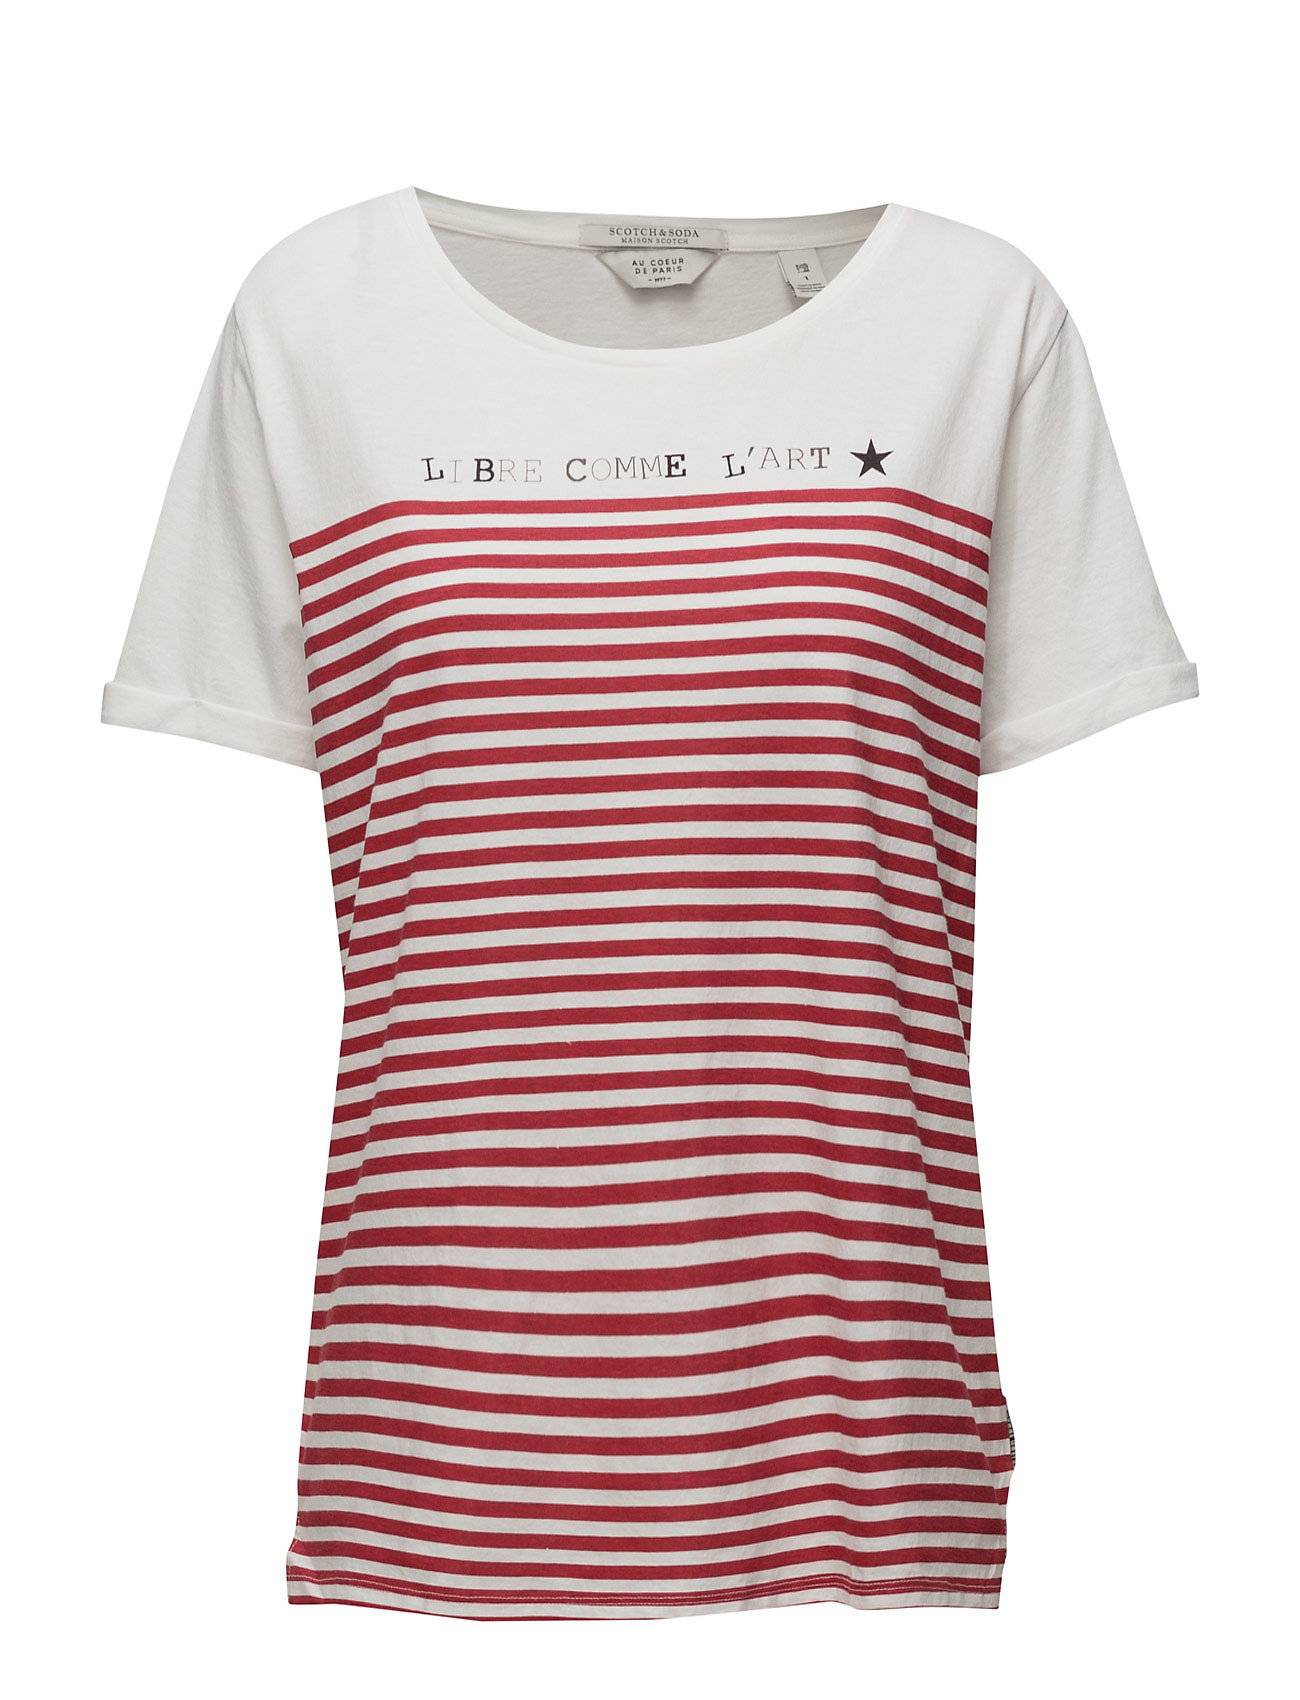 Scotch & Soda French Inspired Short Sleeve Tee